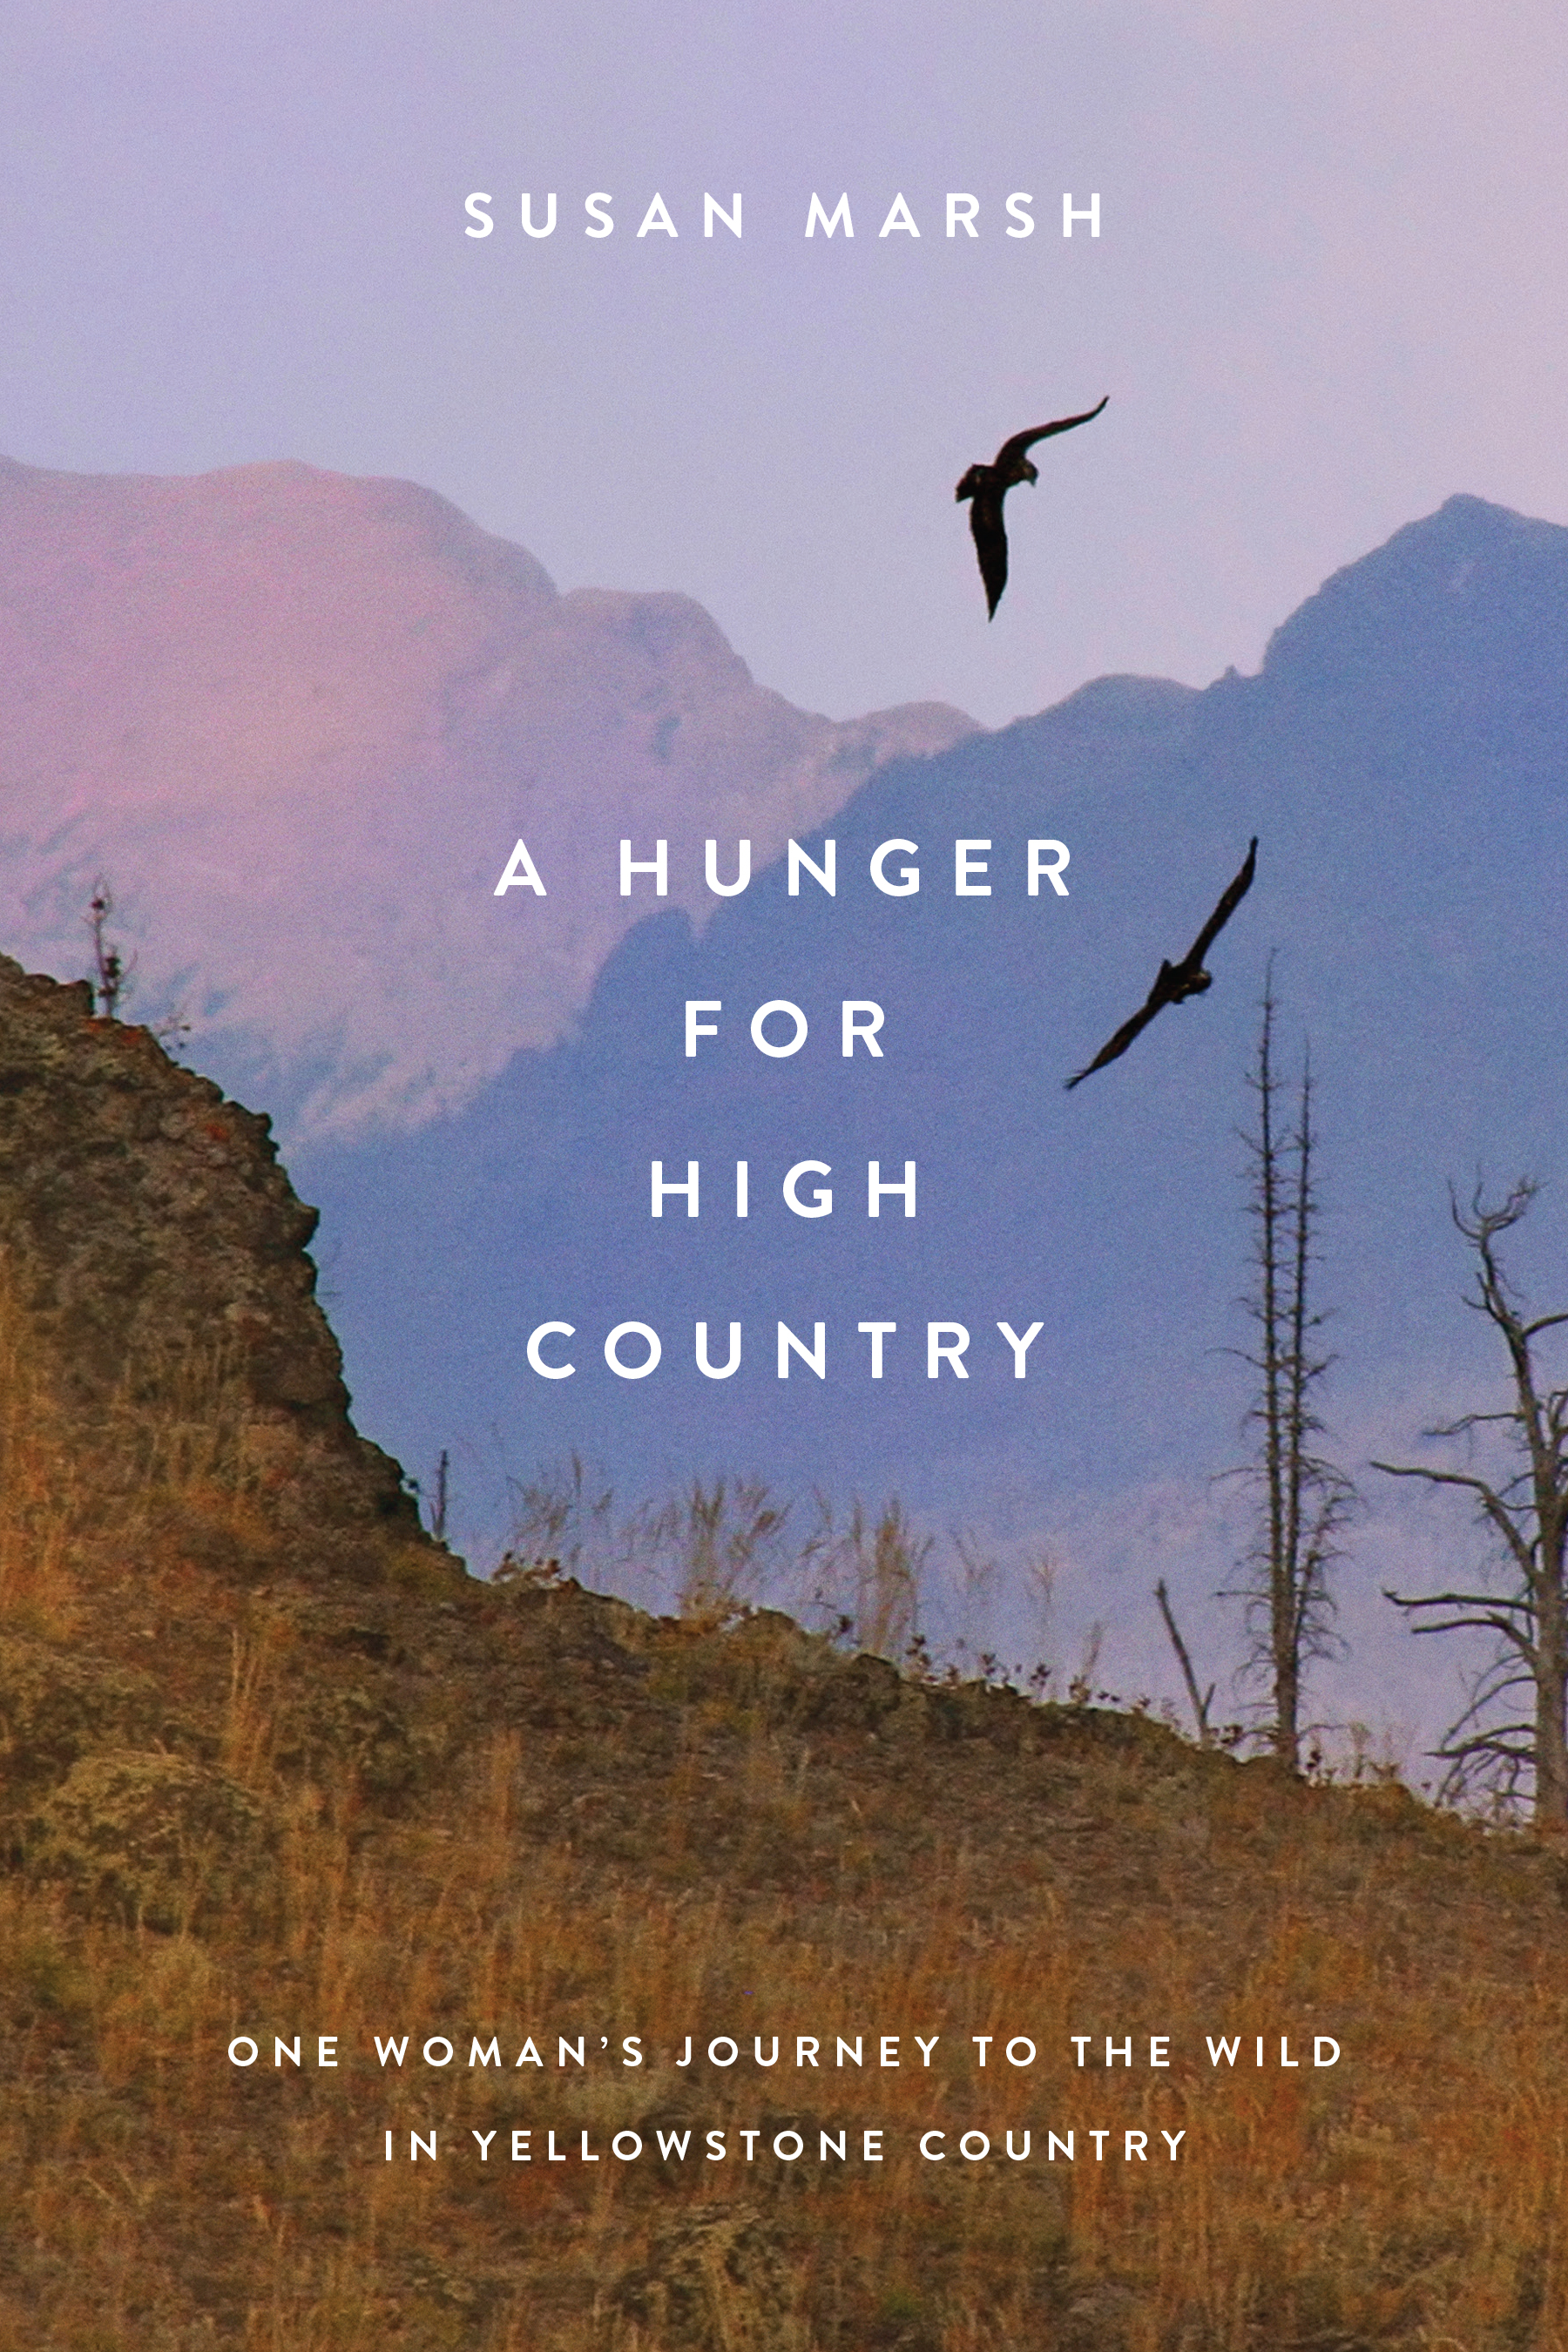 HungerforHighCountry